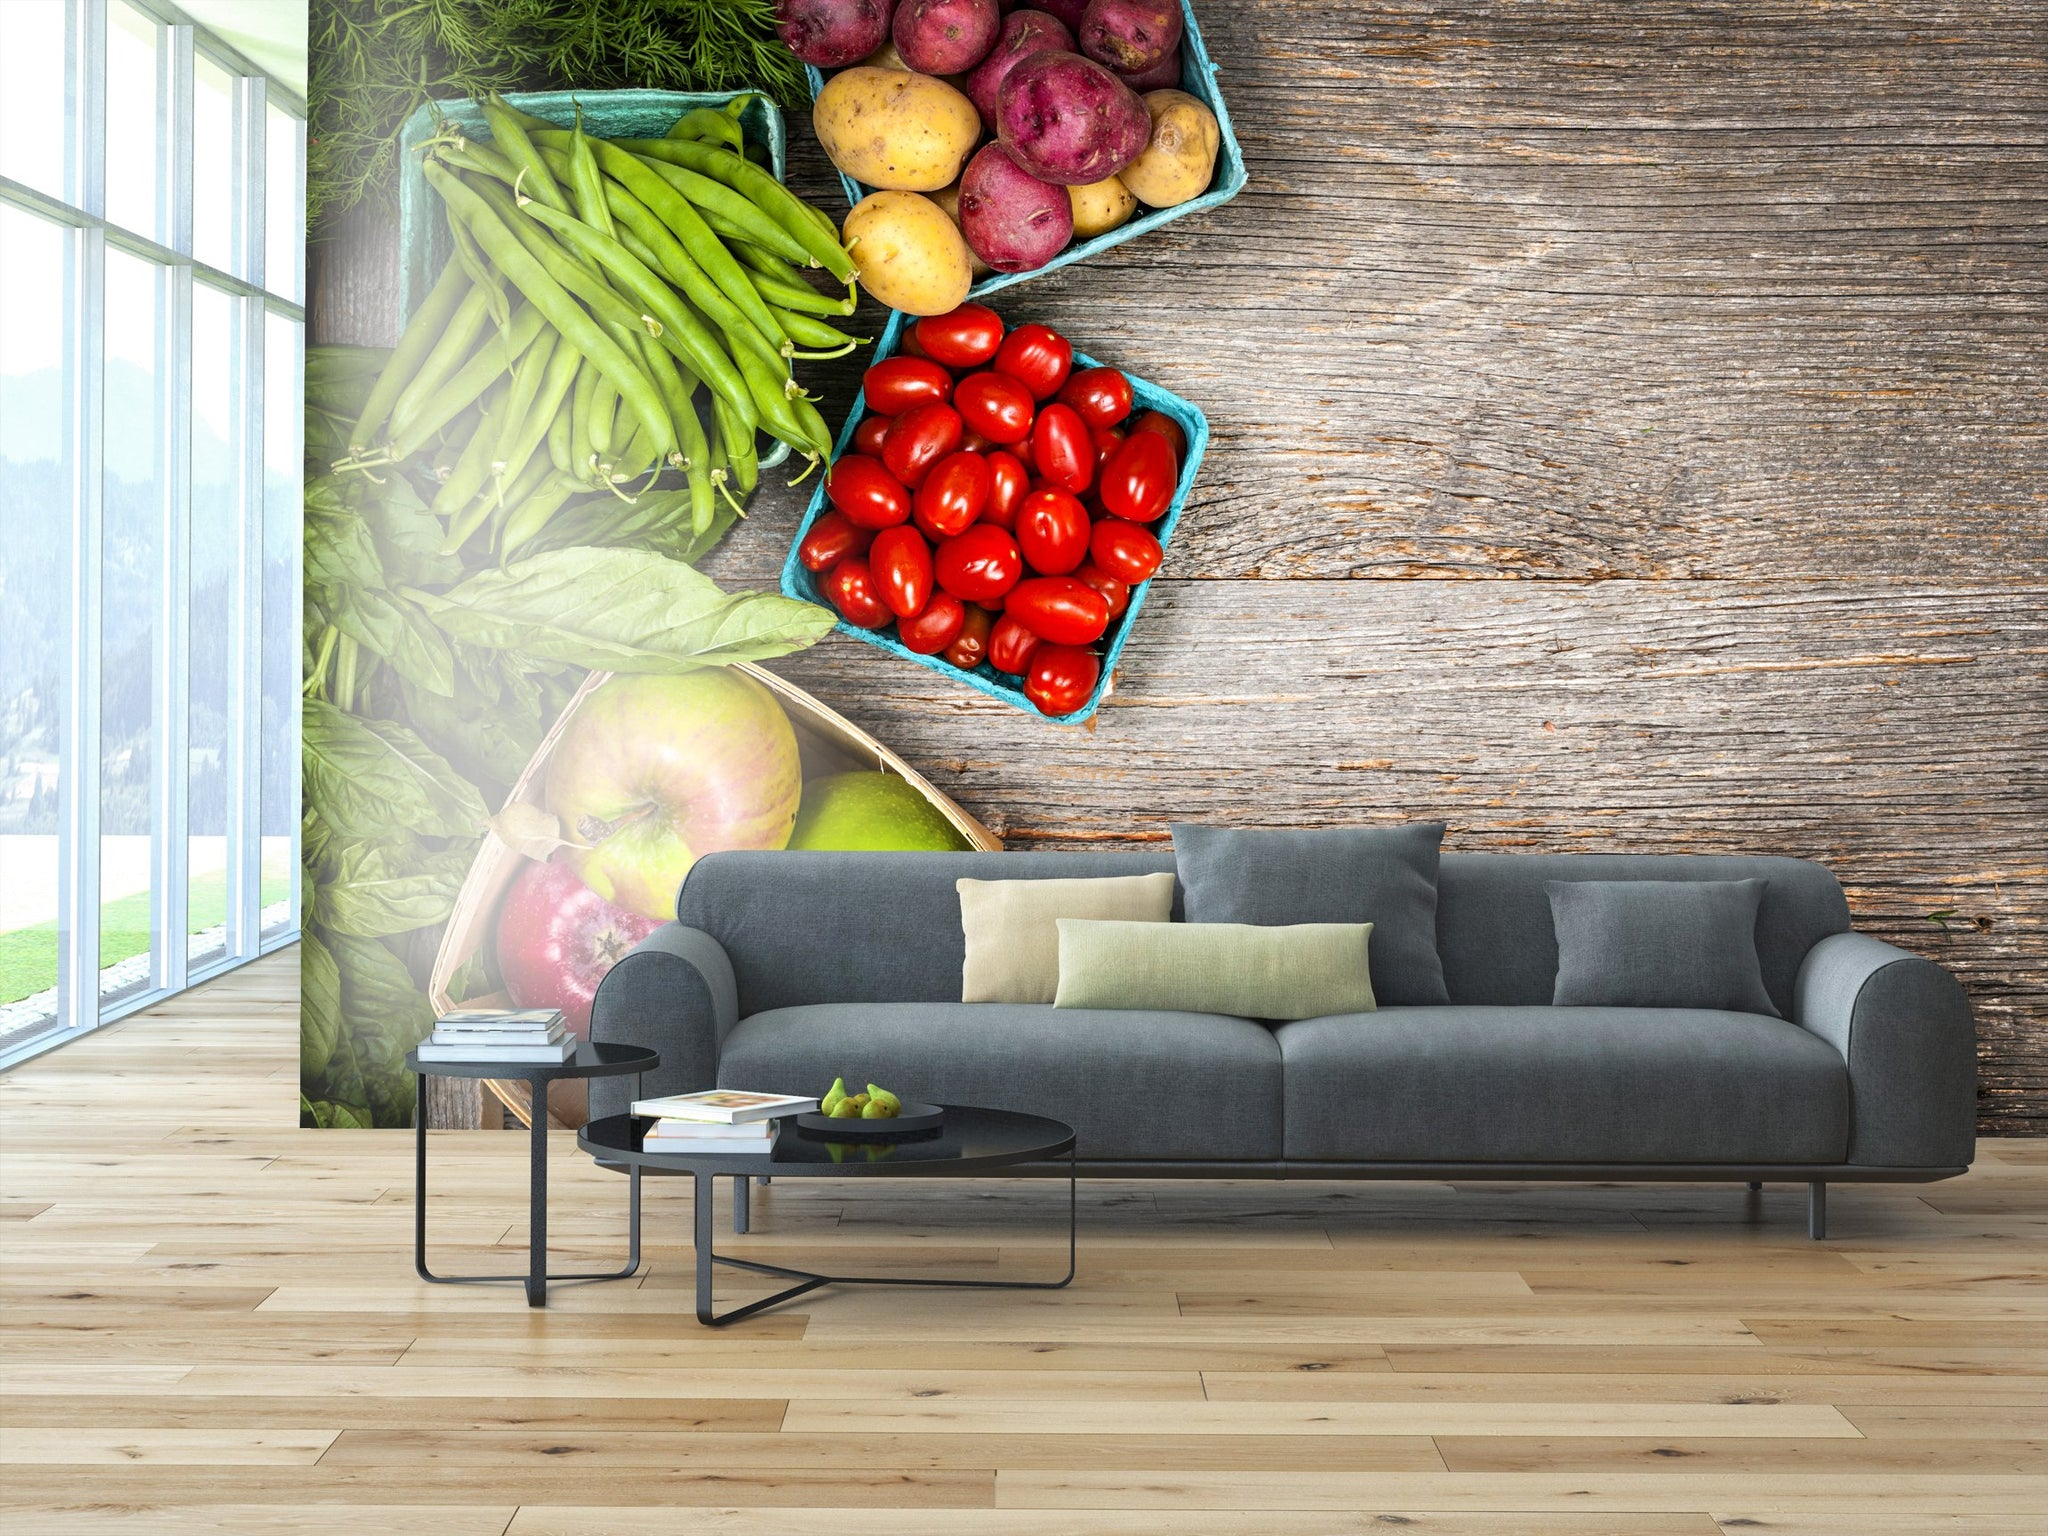 Wallpaper Fruits and vegetables SW187